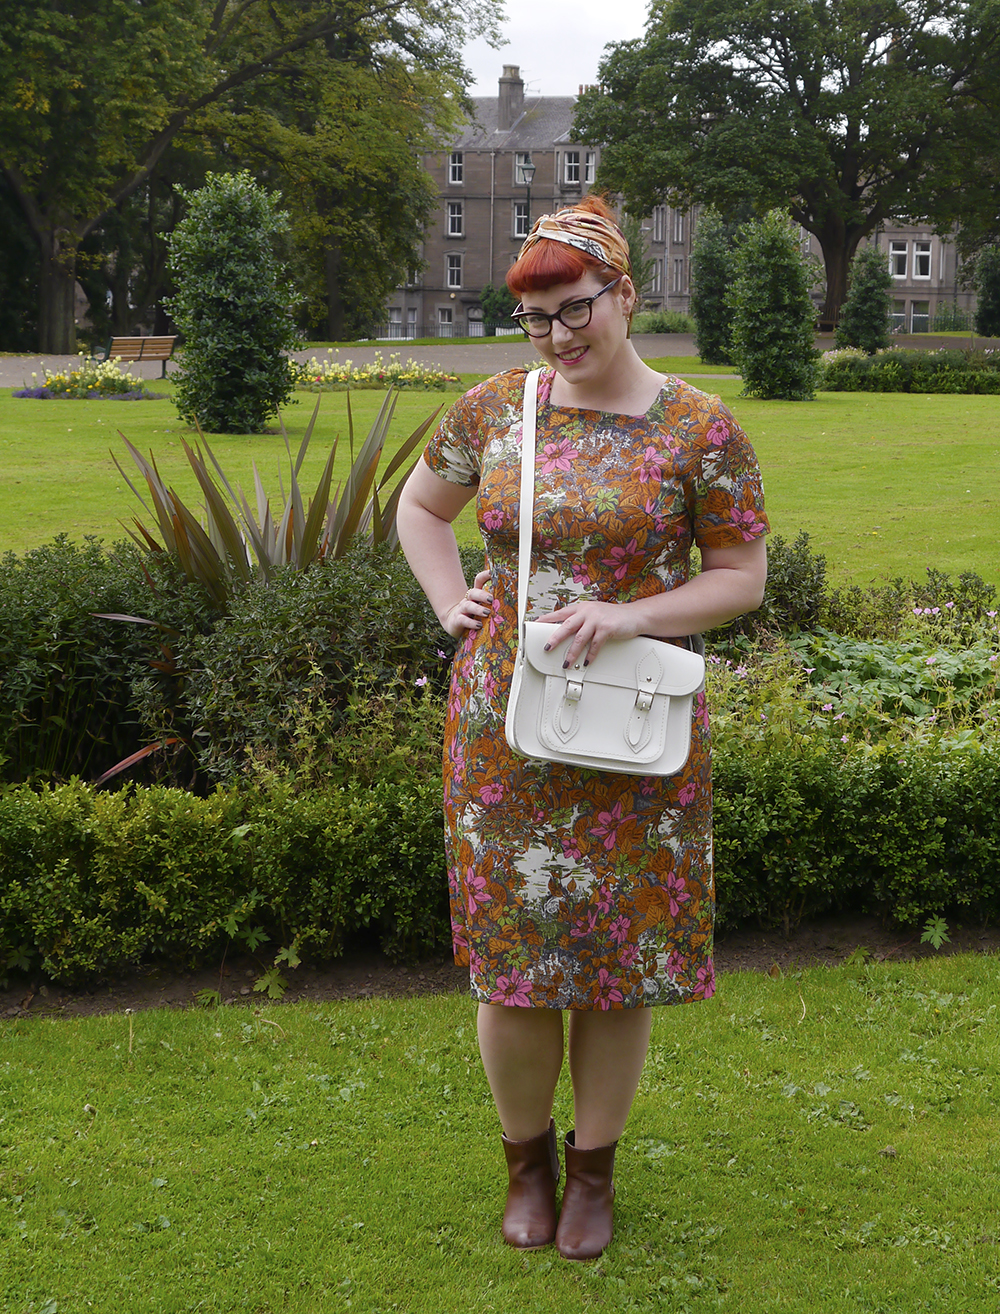 Scottish blogger, Dundee blogger, Wardrobe Conversations, ginger blogger, vintage shopping in Dundee, Dundee shopping, Dundee vintage fair, vintage shopping. vintage weigh & pay, #weighandpay, vintage outfit, bargain vintage outfit, cheap vintage shopping, vintage shopping tips, vintage fair, vintage handmade dress, patterned dress, vintage postcard scarf, white vinatge satchel, white bag, cat eye glasses, Spex pistol glasses, Ray-ban glasses